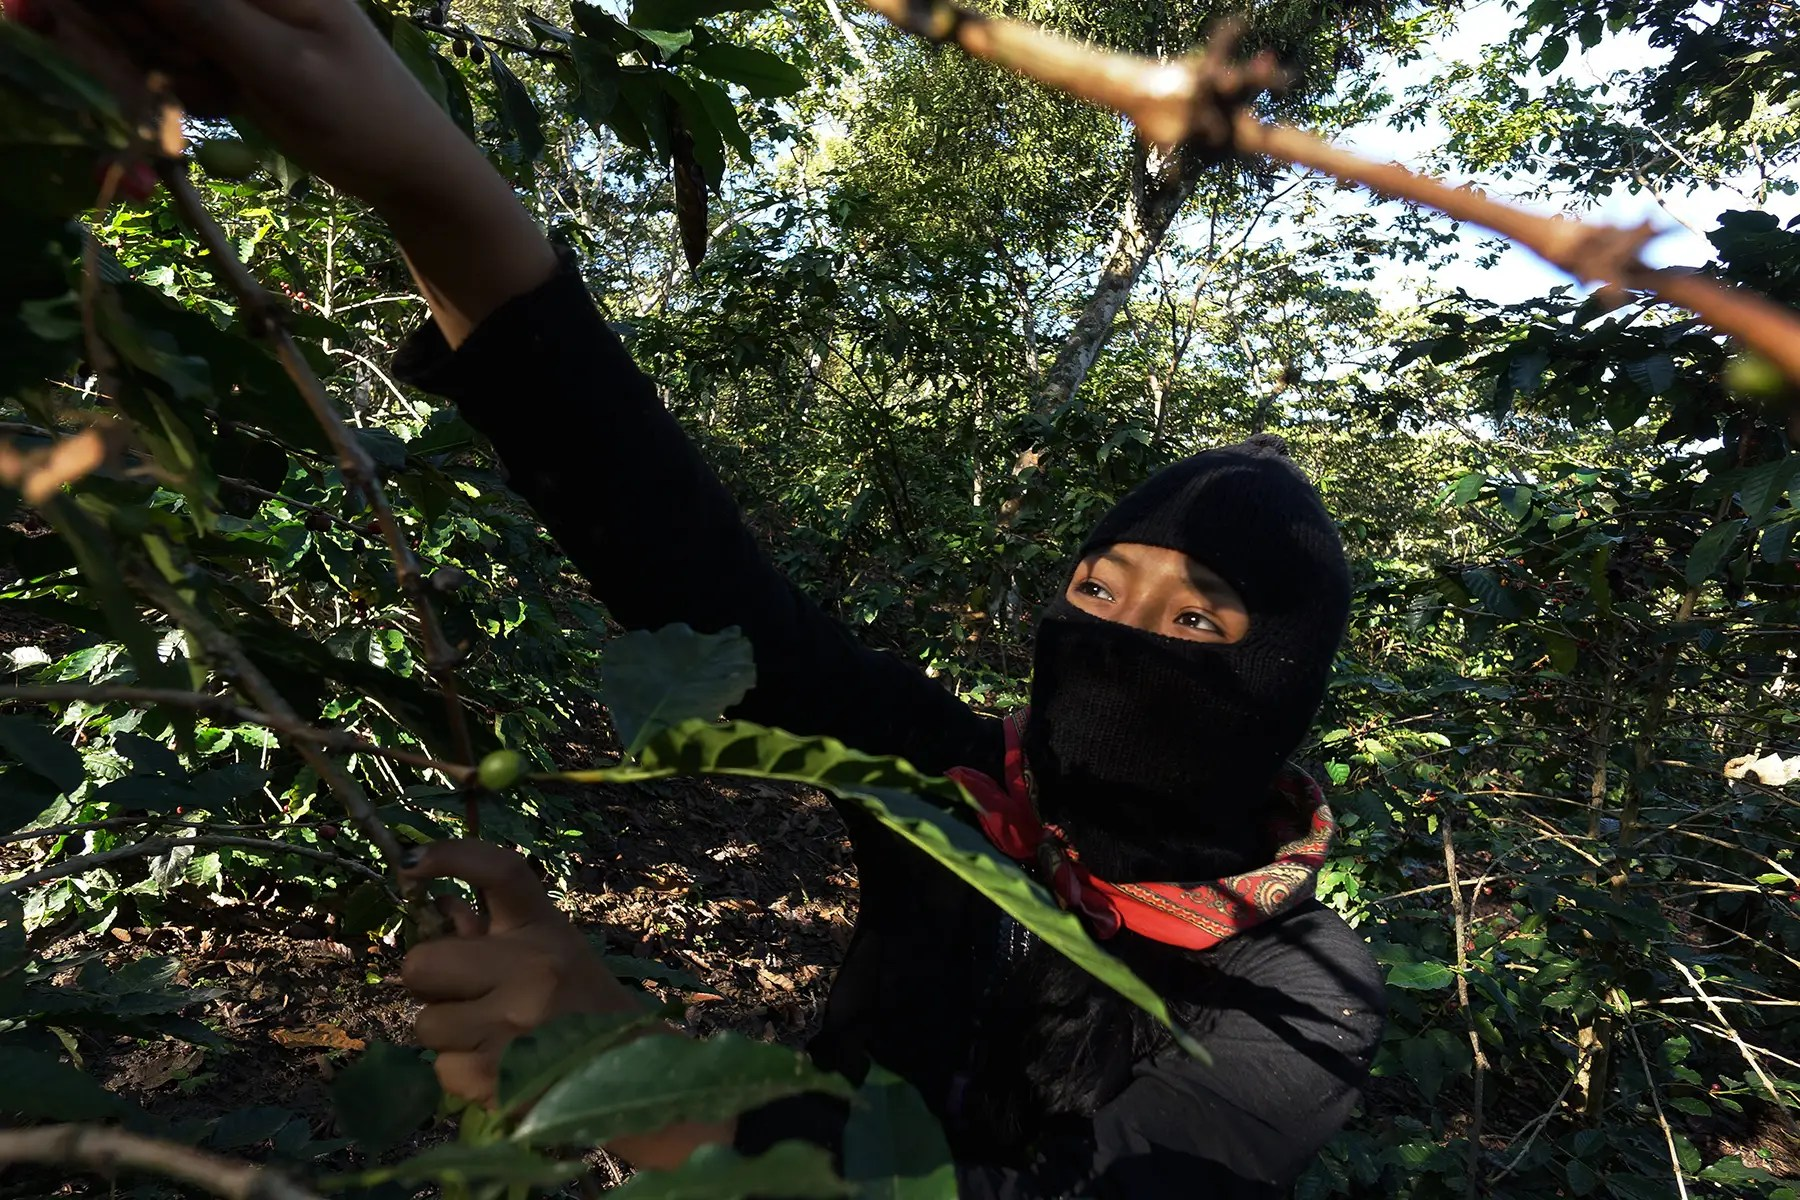 The coffee bean is another important crop that is traded through these Zapatista-run cooperatives, which make around 130 tons of coffee a year.